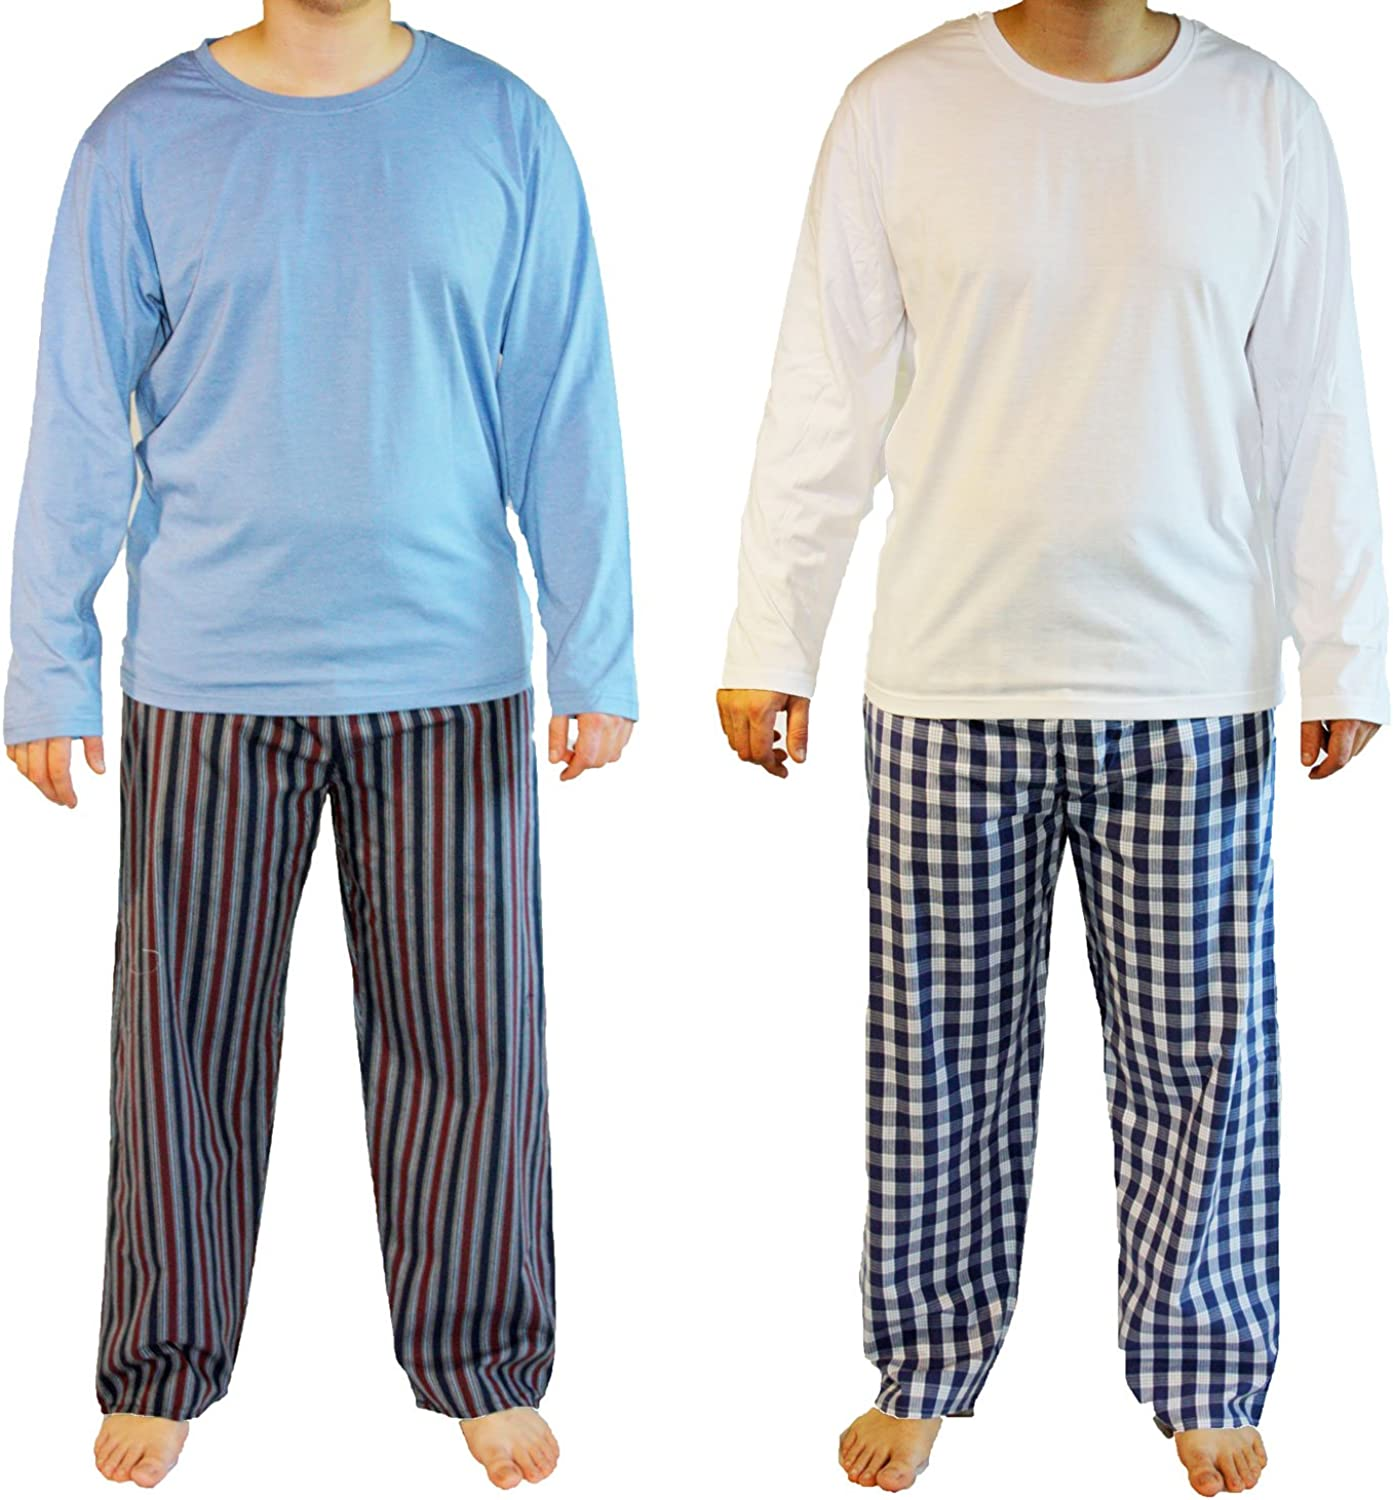 New Men/'s 2 Pack Haigman Poly Cotton Pyjama PJ Loungewear Bottoms Pants M-2XL